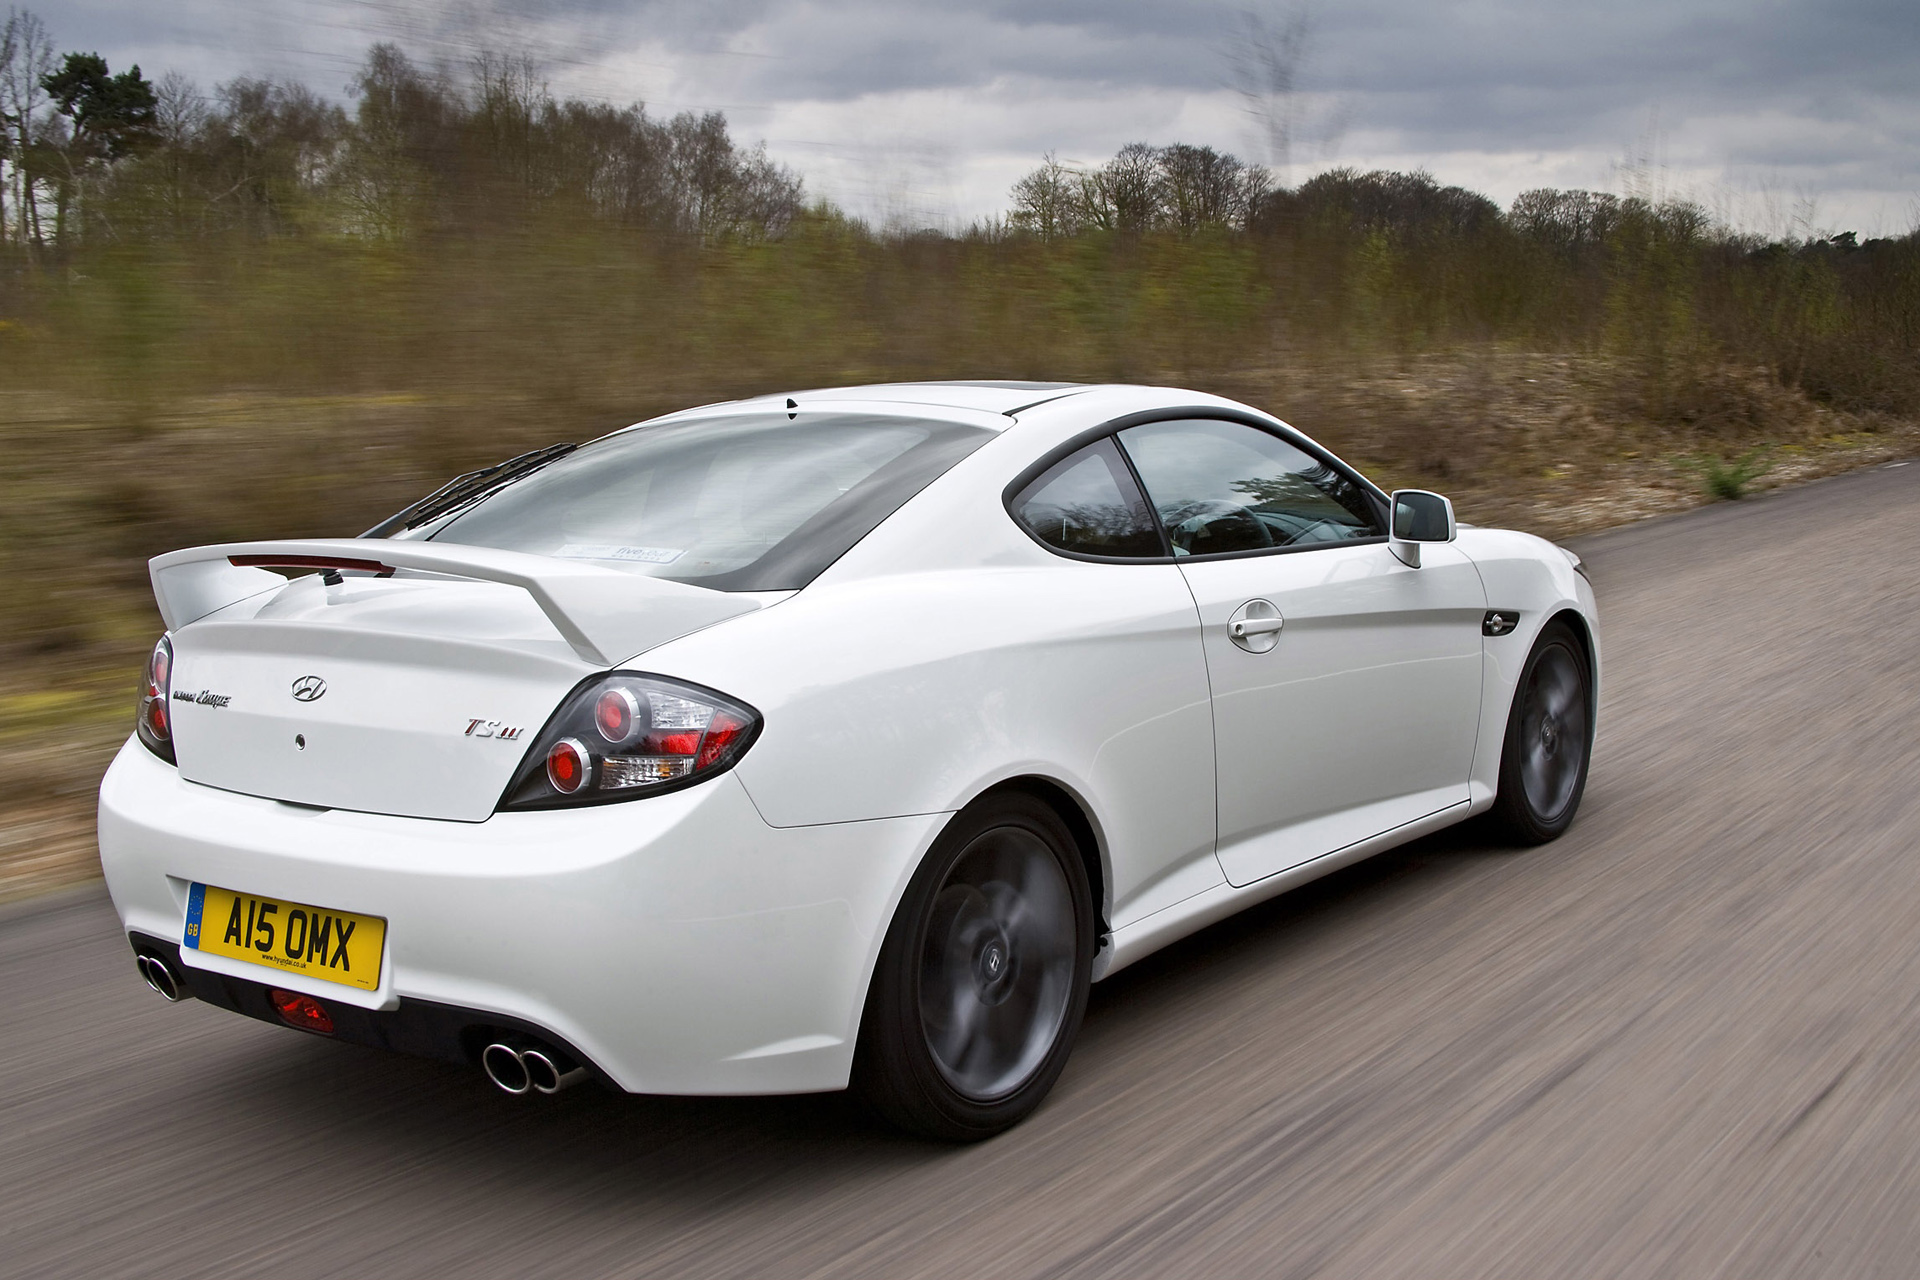 Hyundai Coupe photo 65791